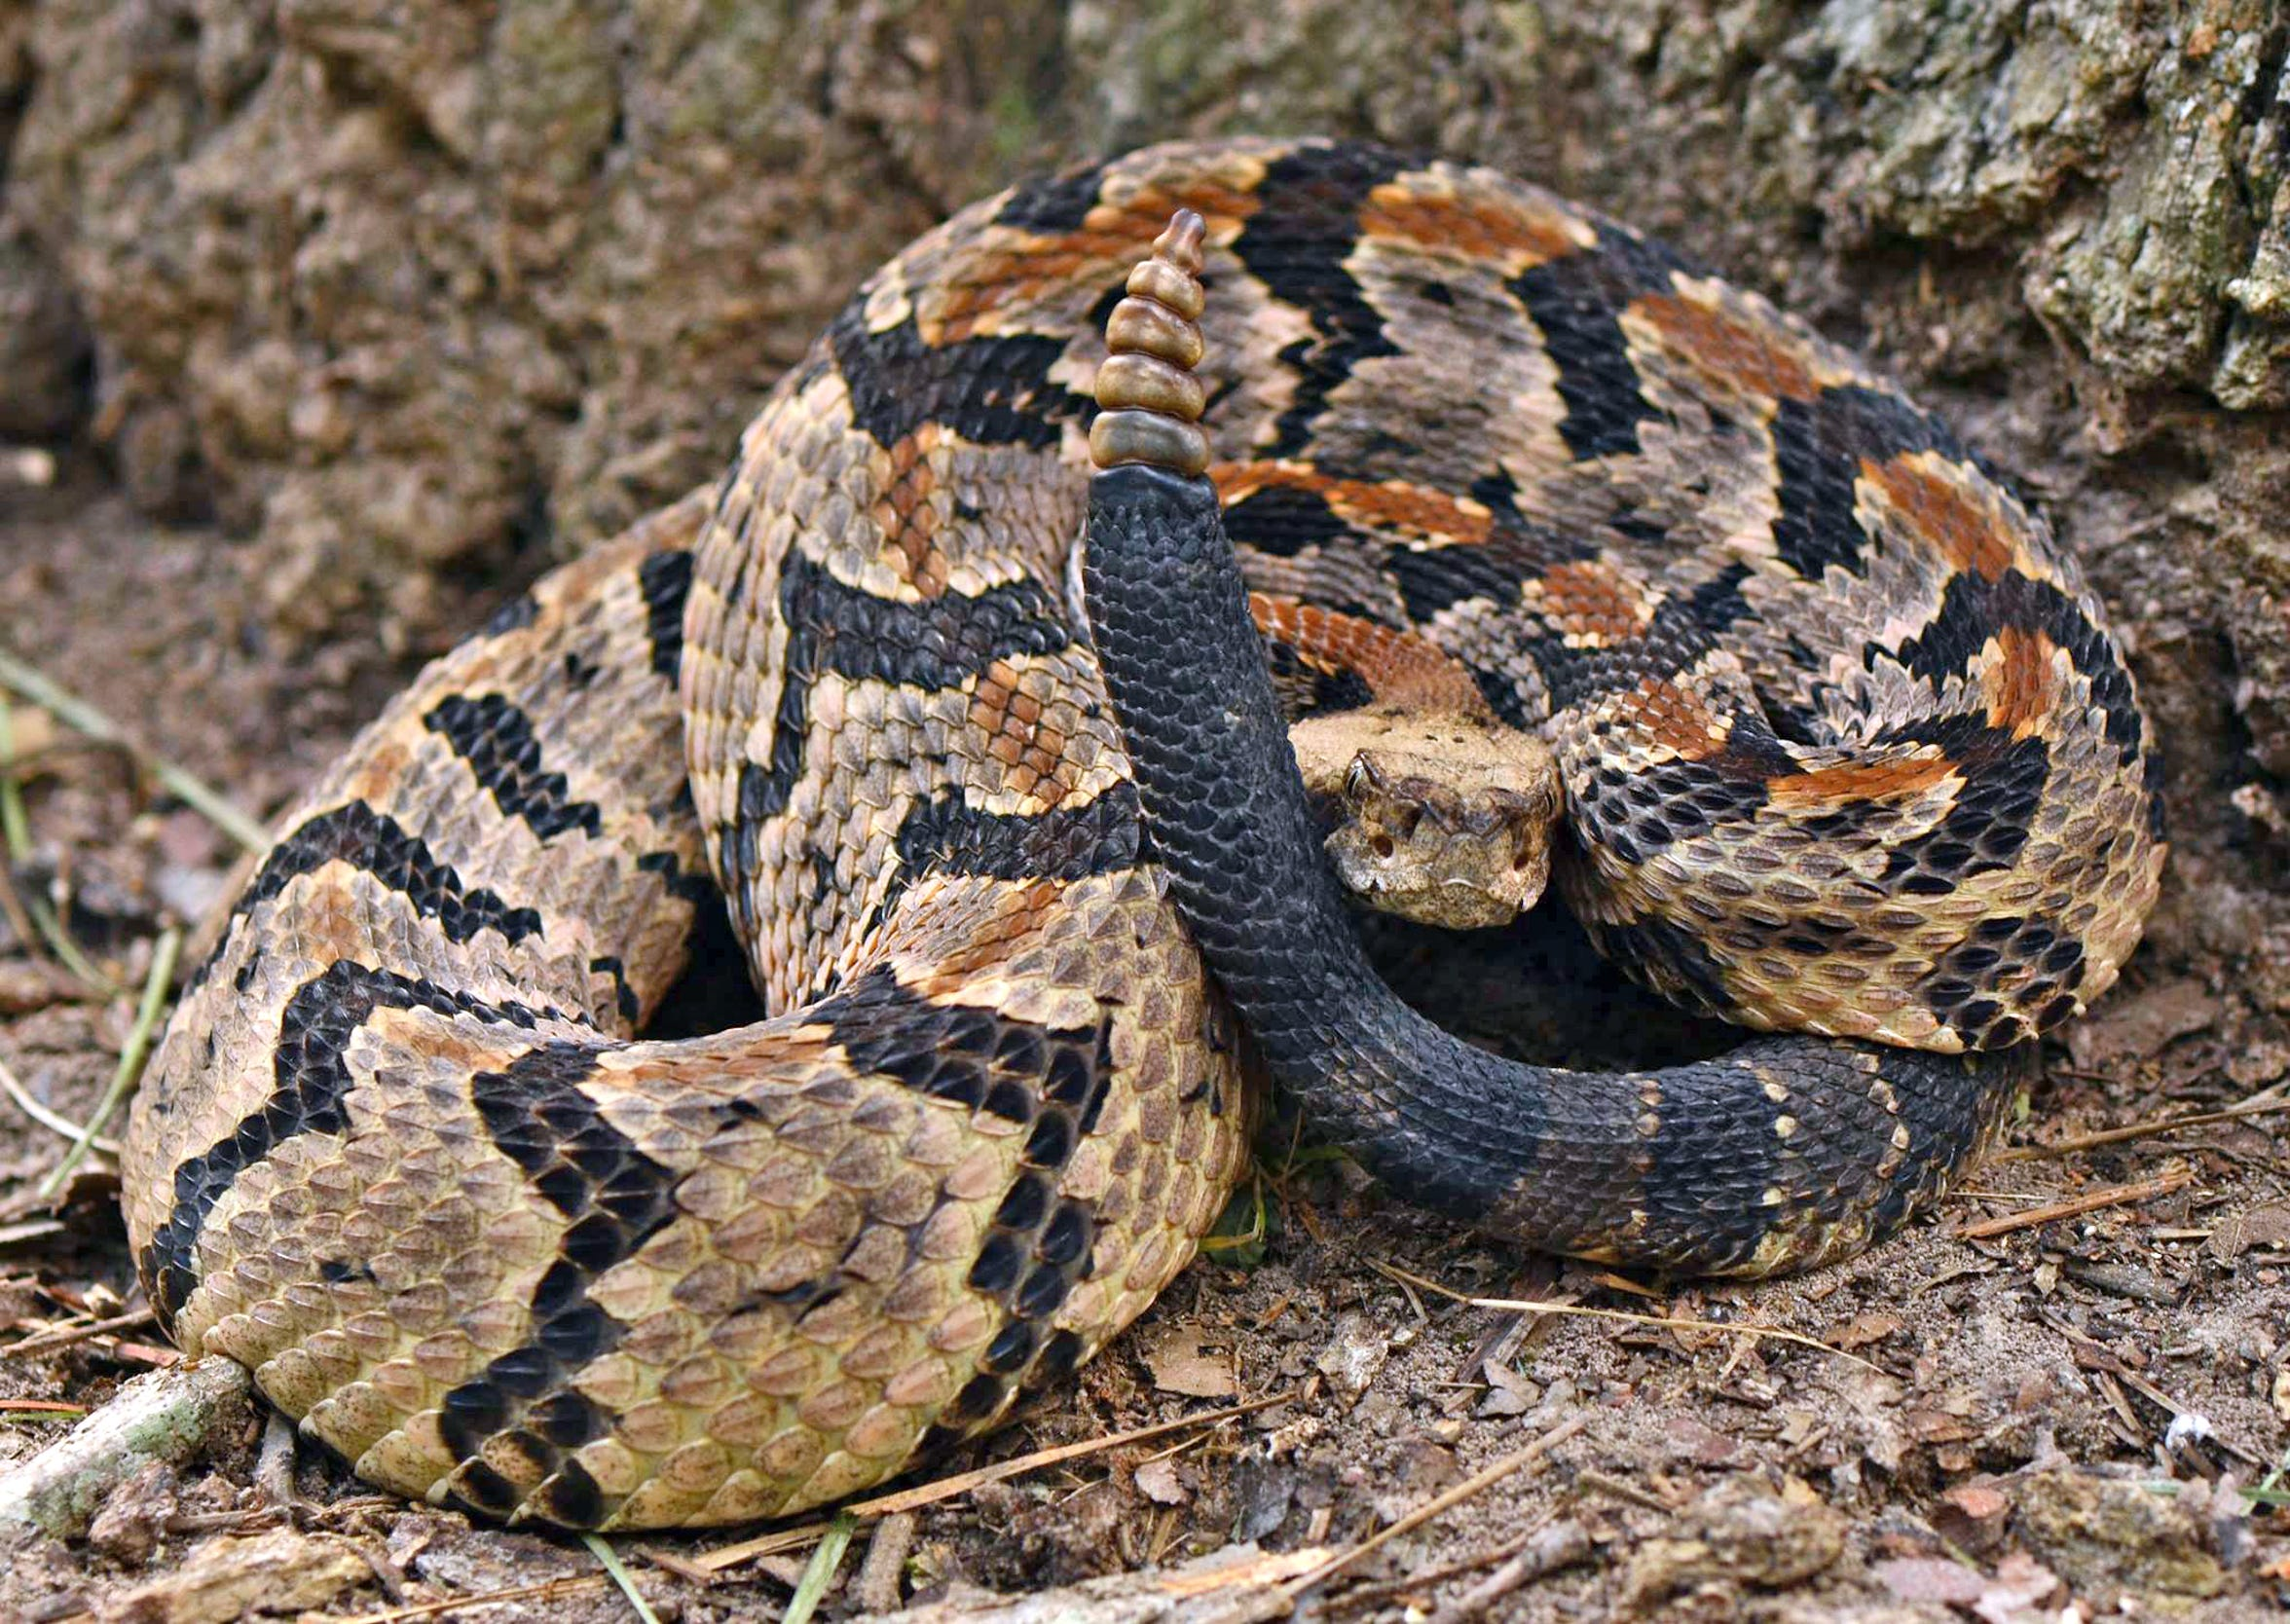 Timber rattlers are listed as a threatened species in Texas, which means it is unlawful to kill, transport, or possess one.